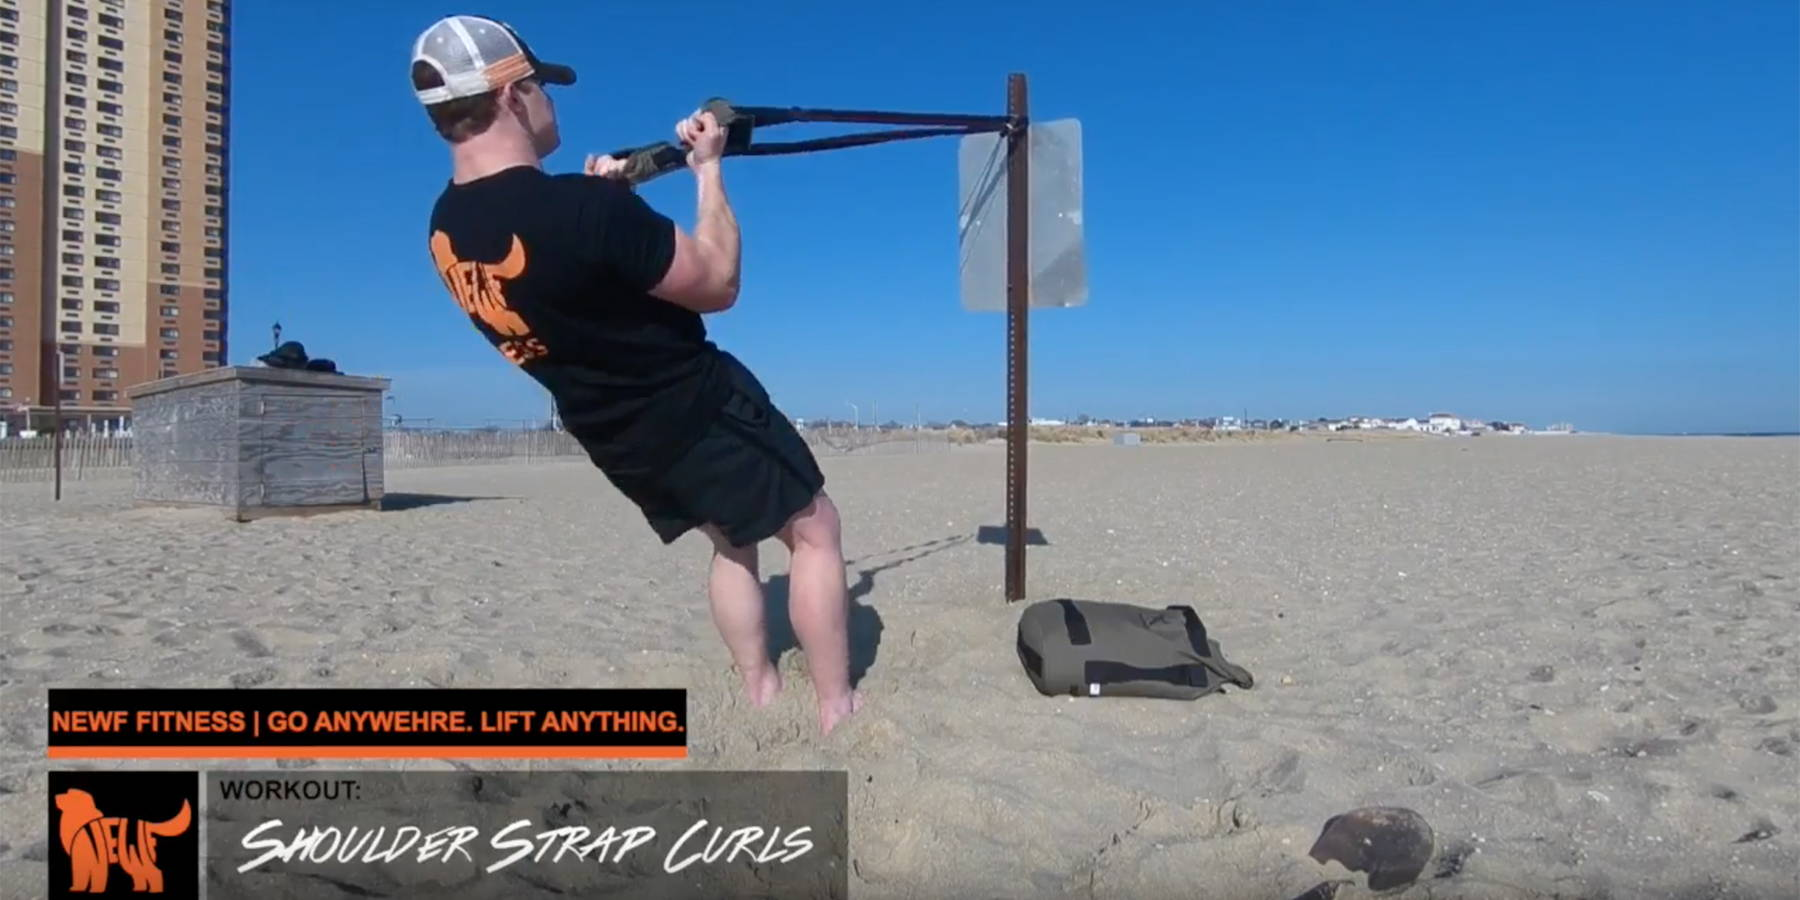 NEWF Bag Strap Curls Exercise